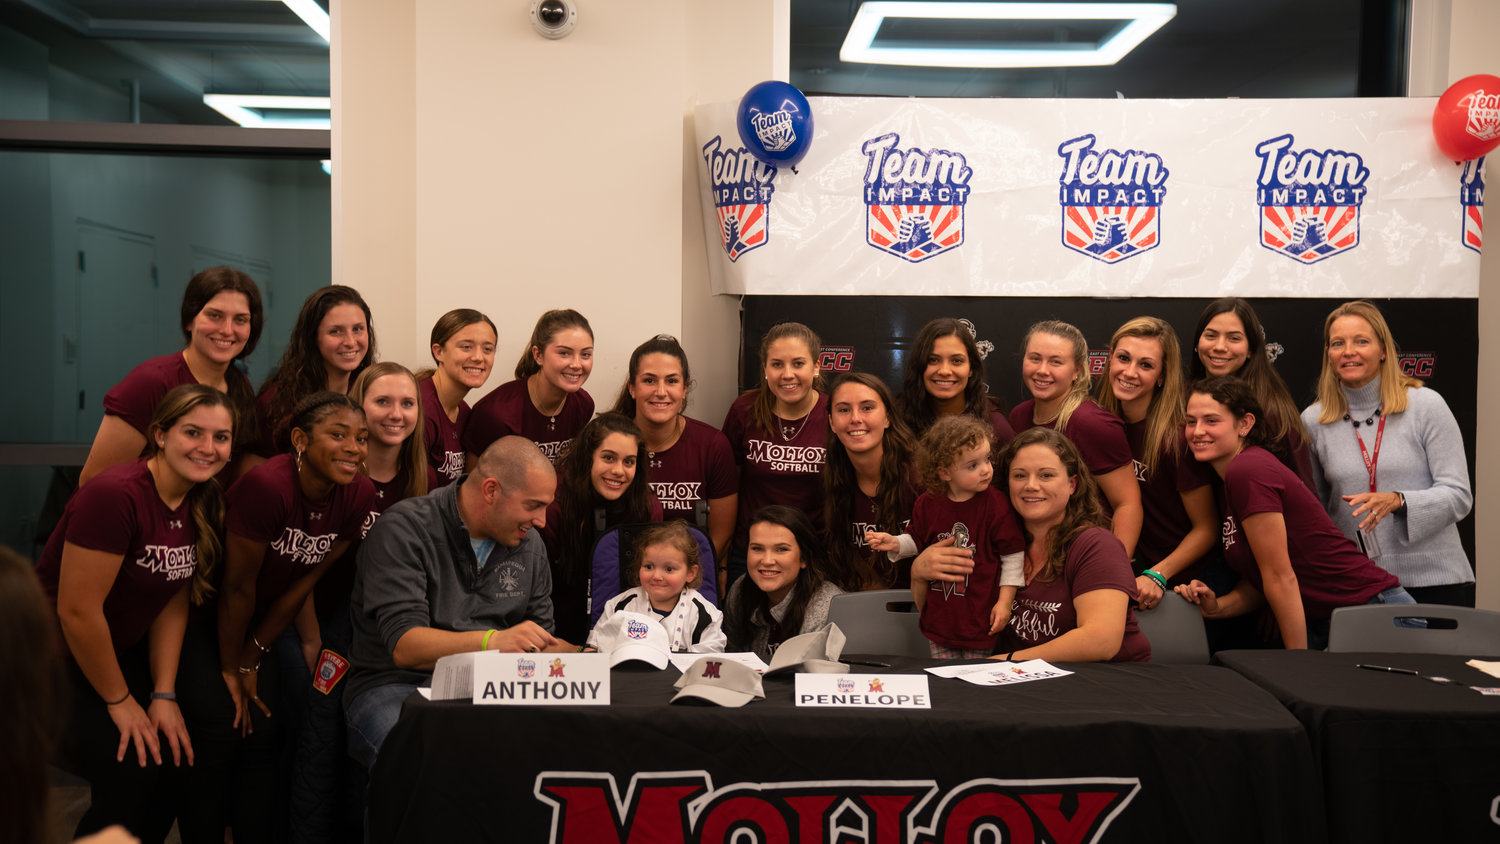 Penelope DiChiara and her family with the Molloy softball team.